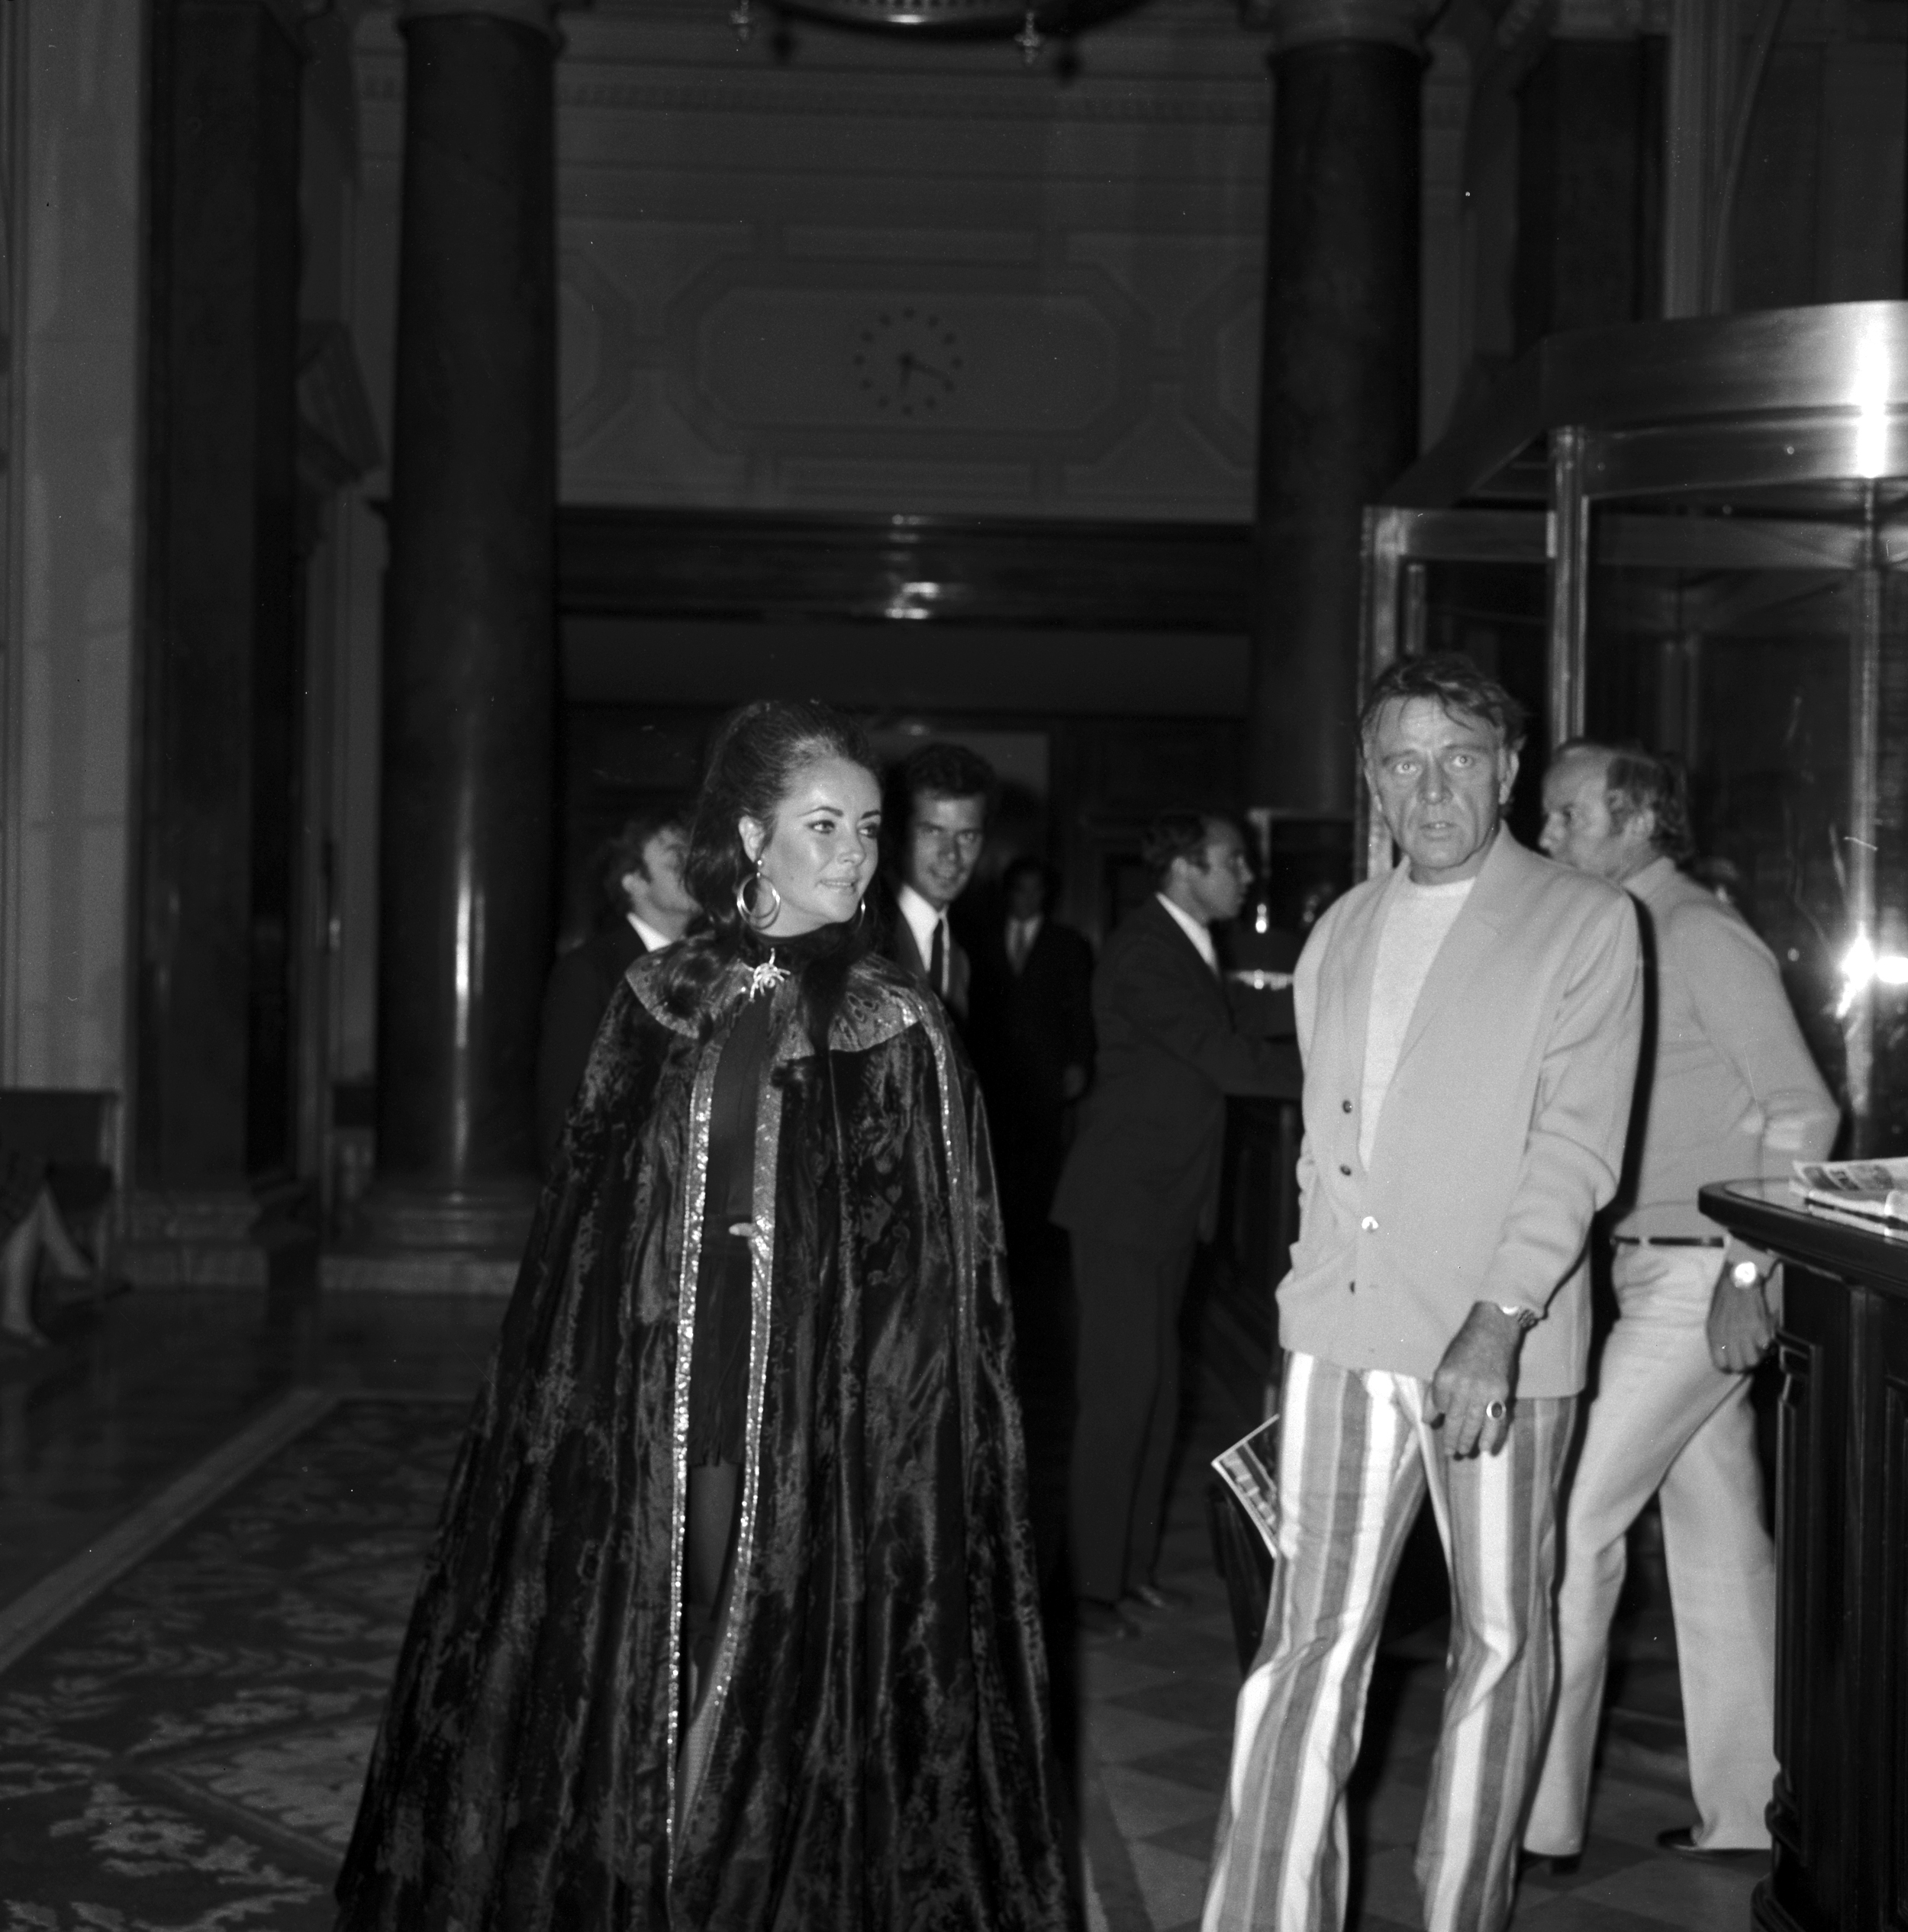 - Richard Burton and Liz Taylor have been regular guests since 1963, while filming Cleopatra. During one of their stays, they met at the Bar with the Three Peters O'Toole, Sellars and Ustinov and entertained the hotel guests by performing impromptu acts and singing songs.